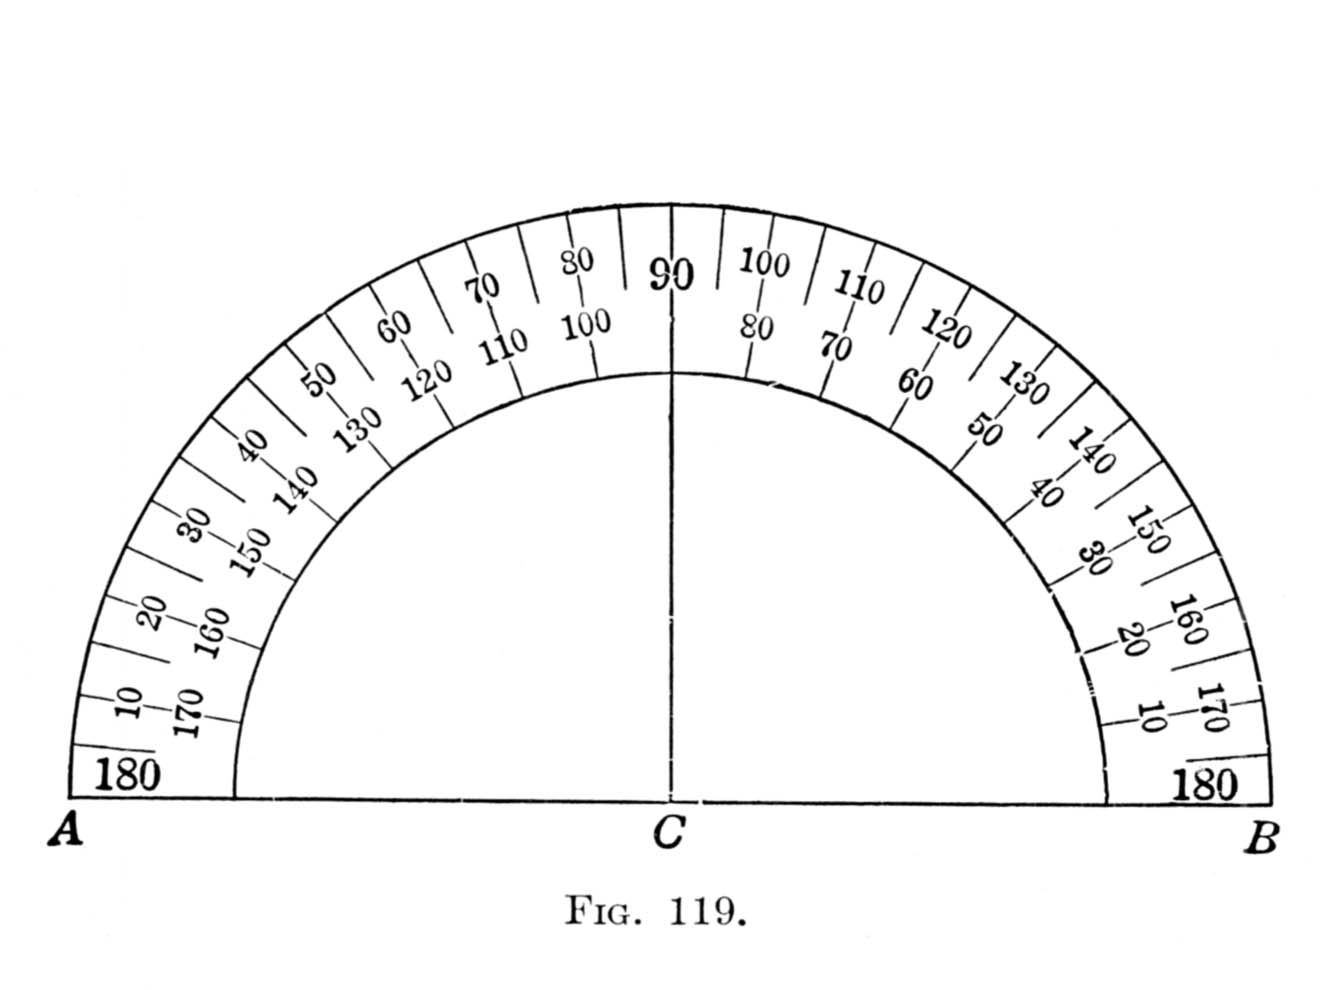 worksheet Protractor Print Out printable protractors 2 digit times multiplication worksheets protractor vertical angles 006 1367548995 protractorhtml